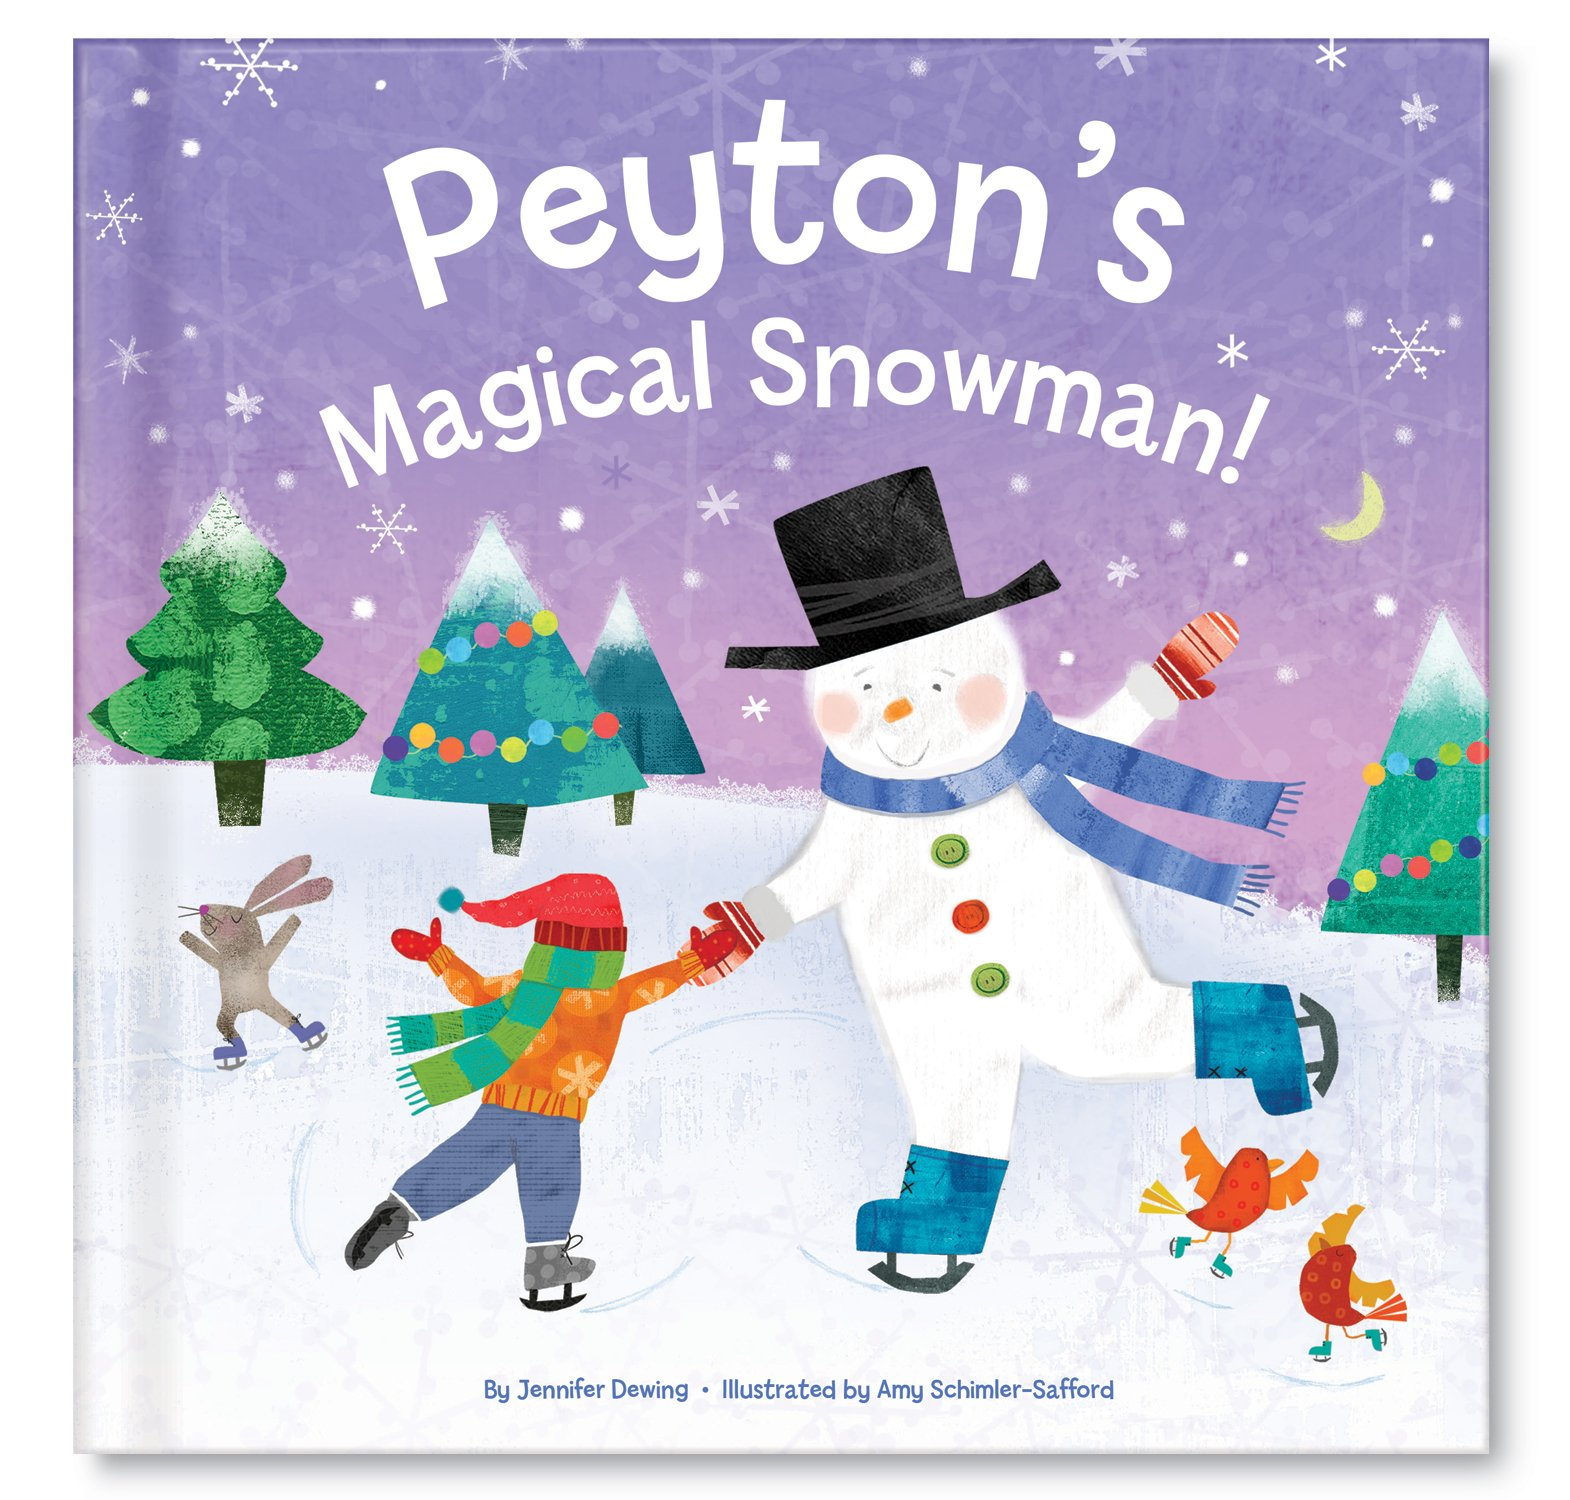 Frosty Snowman Book, Christmas Gift for Kids Boys Girls, Personalized Books for Children